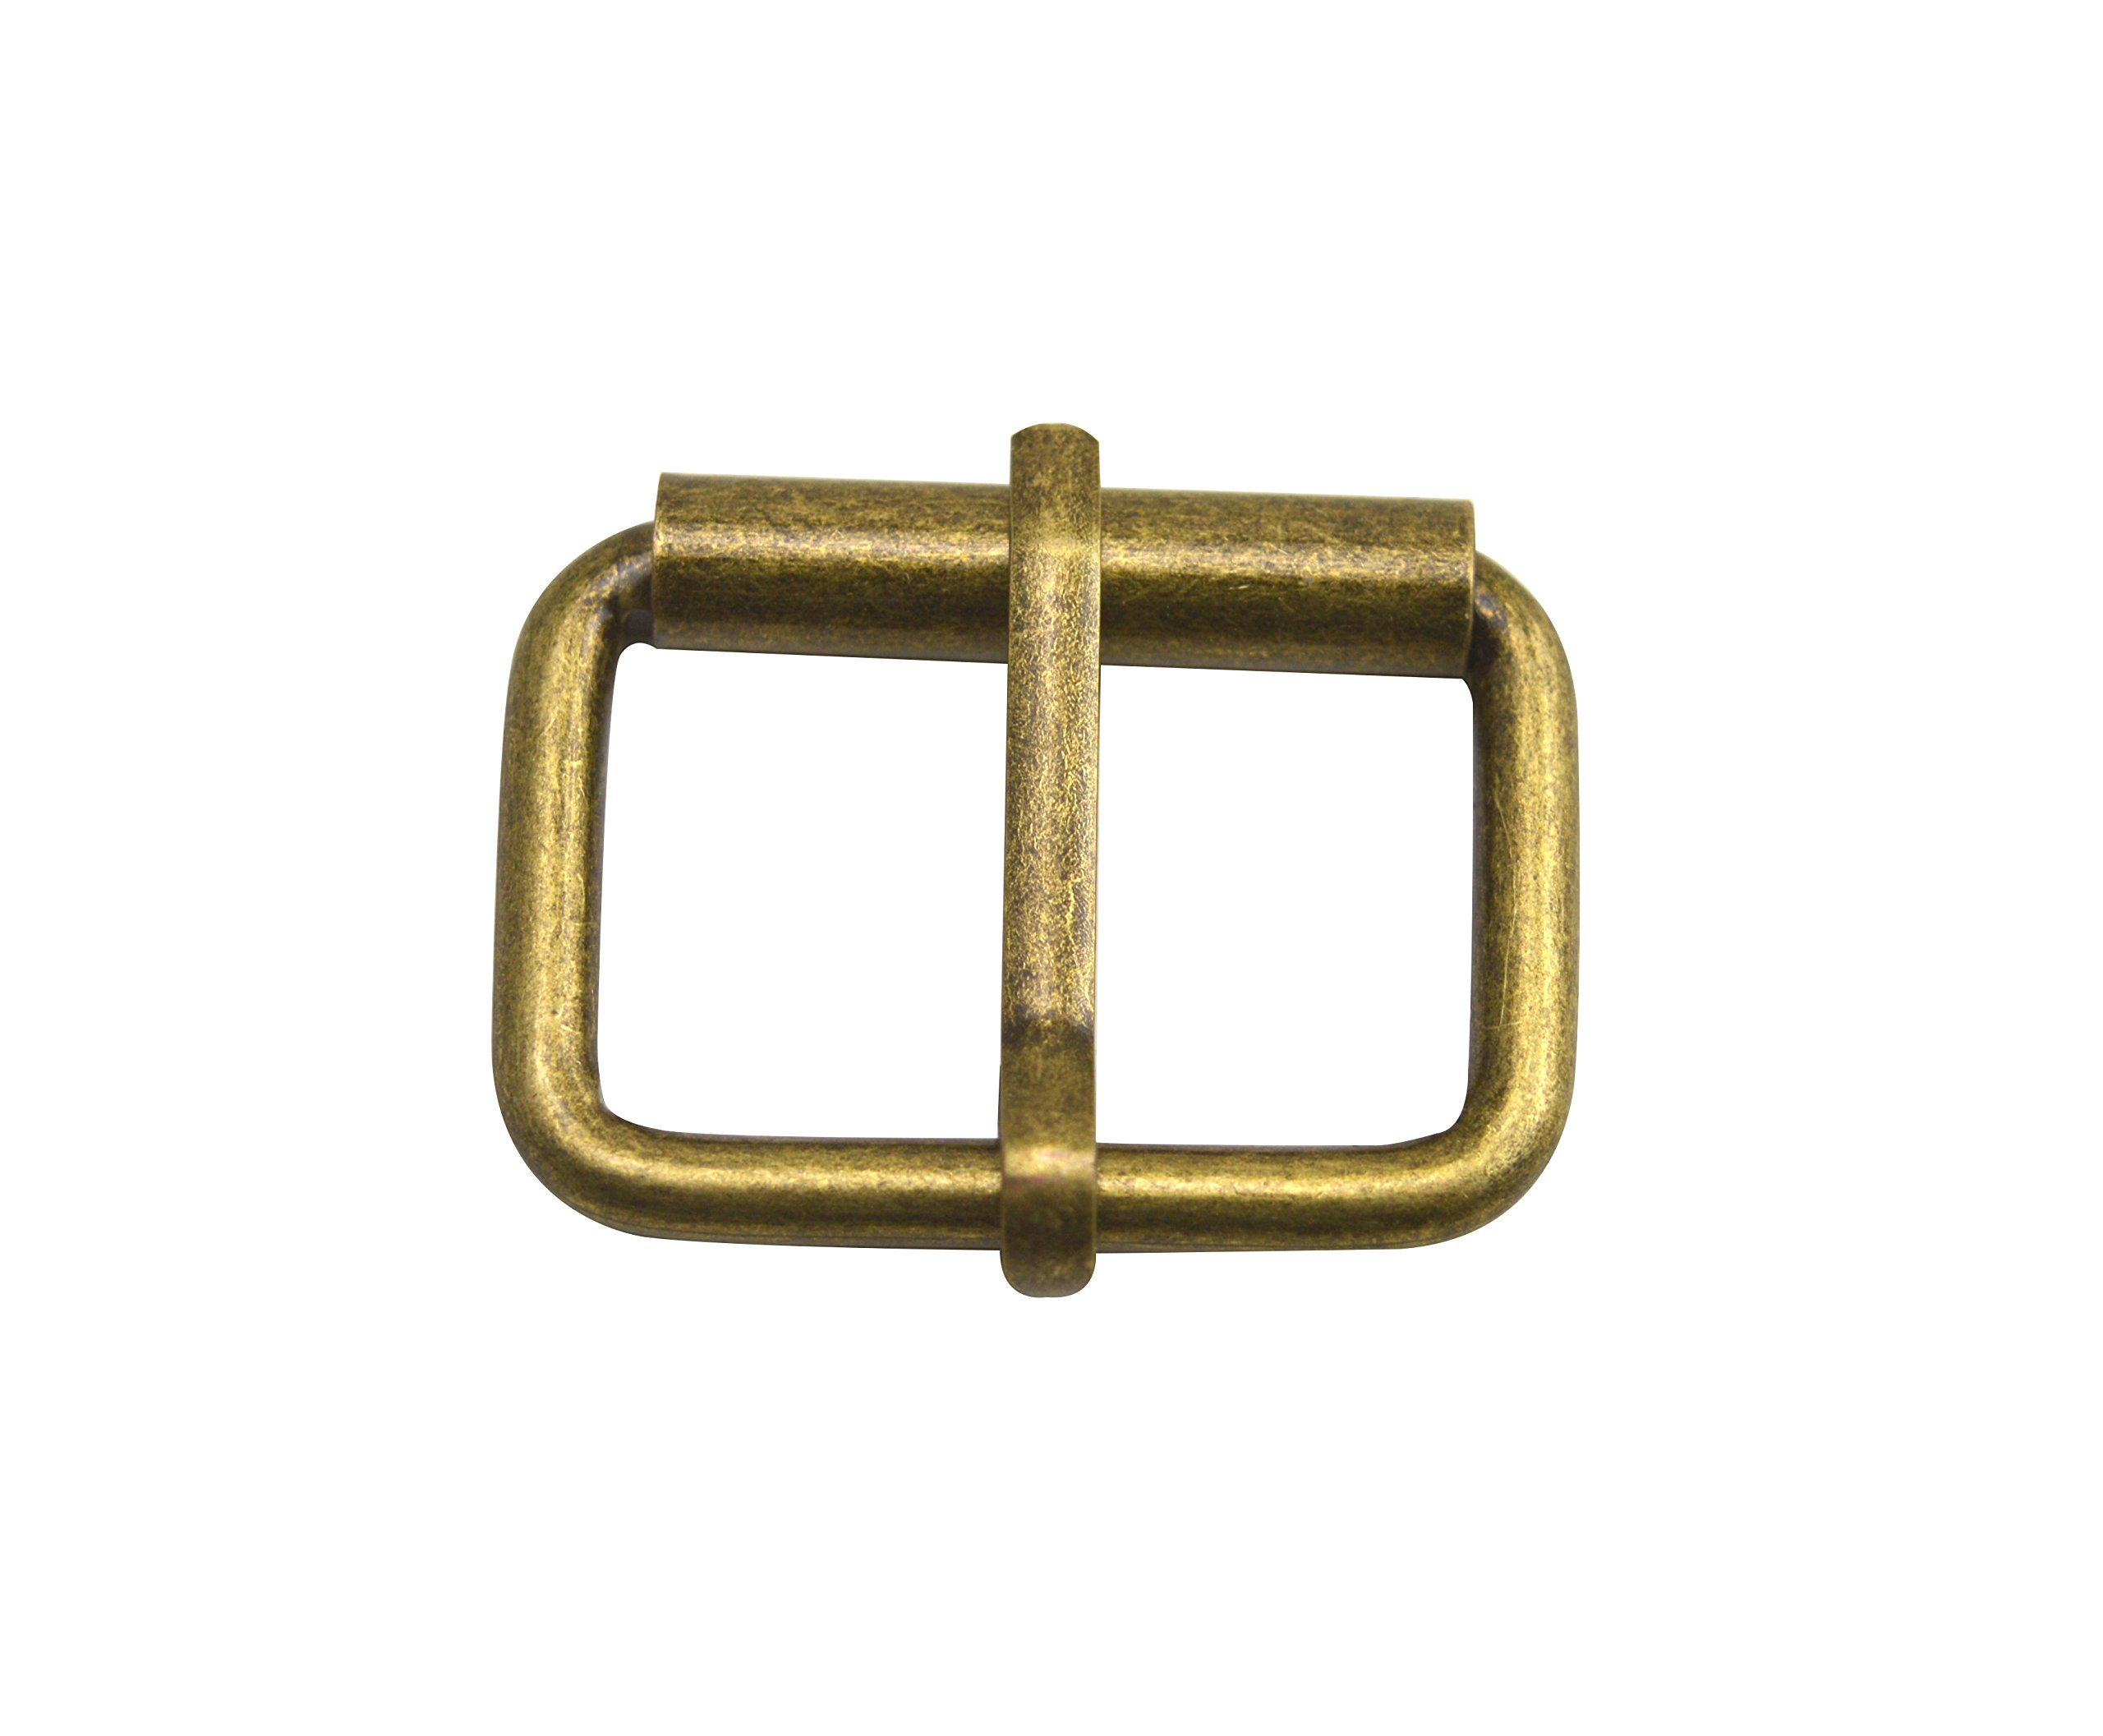 Wuuycoky Single Prong 1.25''X0.8'' Internal Size Bronze Roller Buckle for Belt Strap Pack of 20